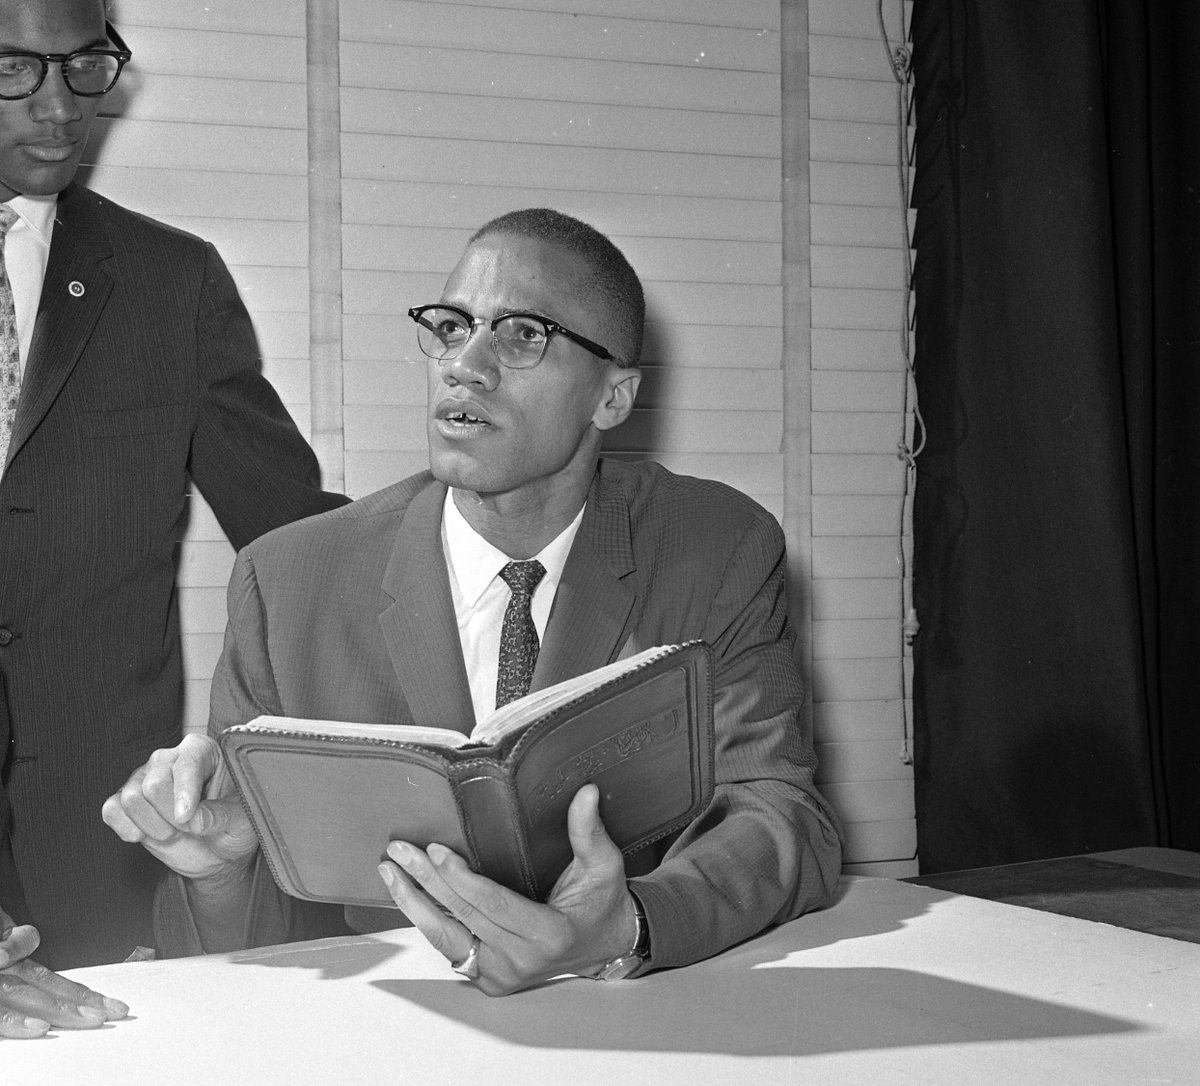 malcolm x essay conclusion Free essays from bartleby | chris dennis critical analysis of communication malcolm x's effectiveness as a speaker should not be in question the context in.